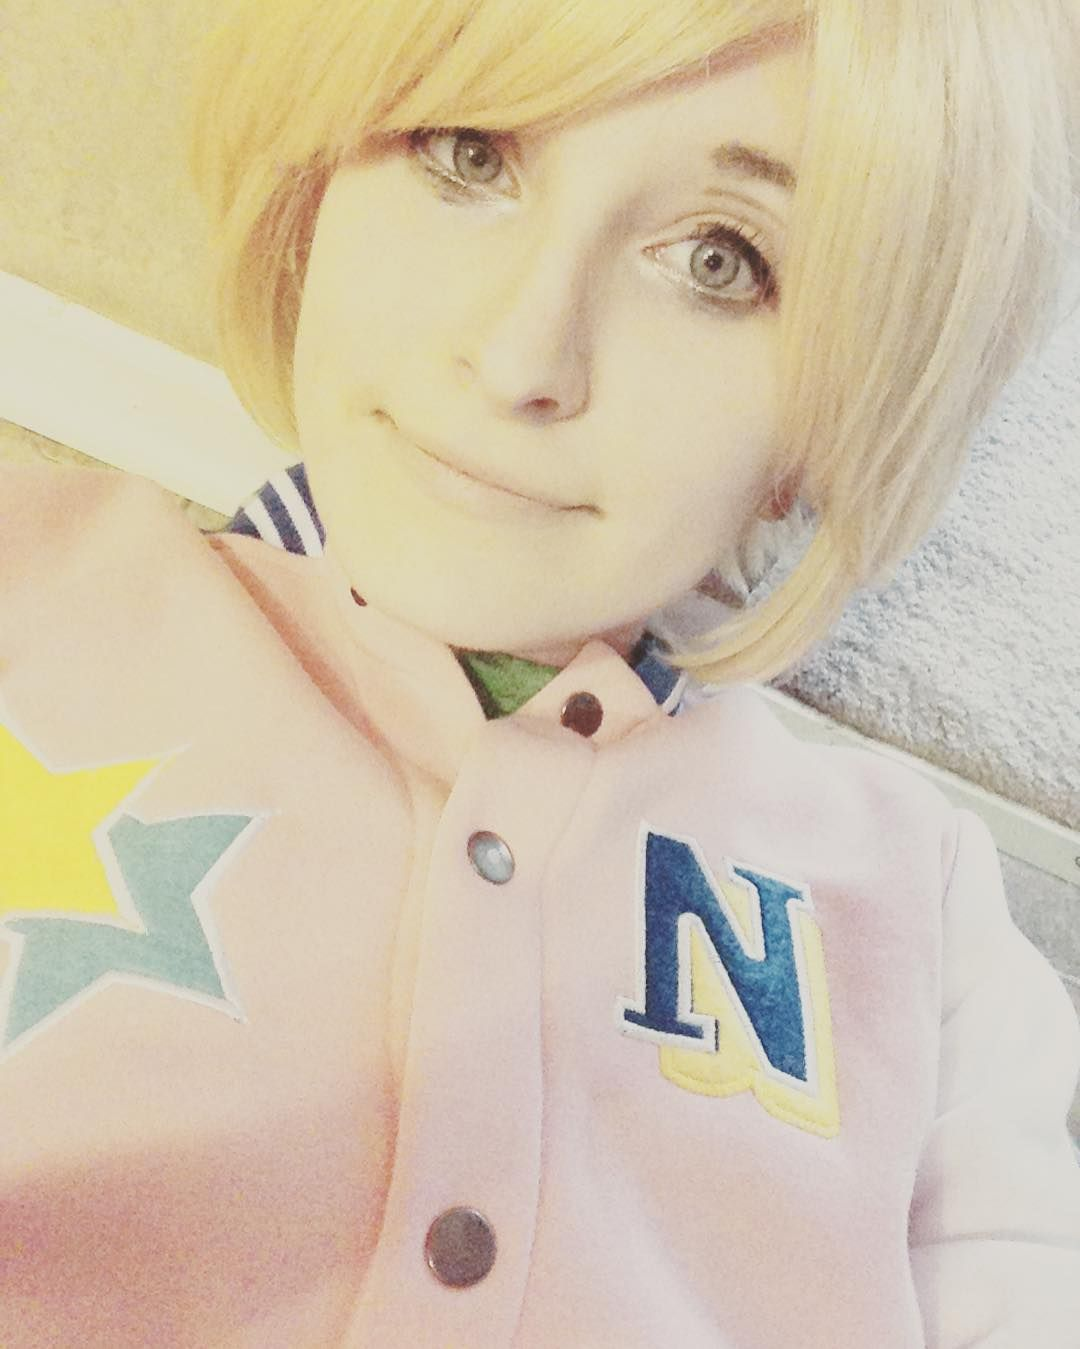 Guys I'm re-watching free and honestly I feel so attacked right now for neglecting my cosplays that I do from it. I need to get my outfits back together and get them up and running again!! #cosplayer #cosplay #cosplaysfs #nagisa #nagisahazuki #nagisacosplay #nagisahazukicosplay #free #freeiwatobiswimclub #iwatobi #iwatobiswimmingclub #eternalsummer #freeeternalsummer #freeeternalsummercosplay #anime #animeboy #animecosplay #manga #makeup #mangacosplay #weeaboo #weeabootrash #queer…